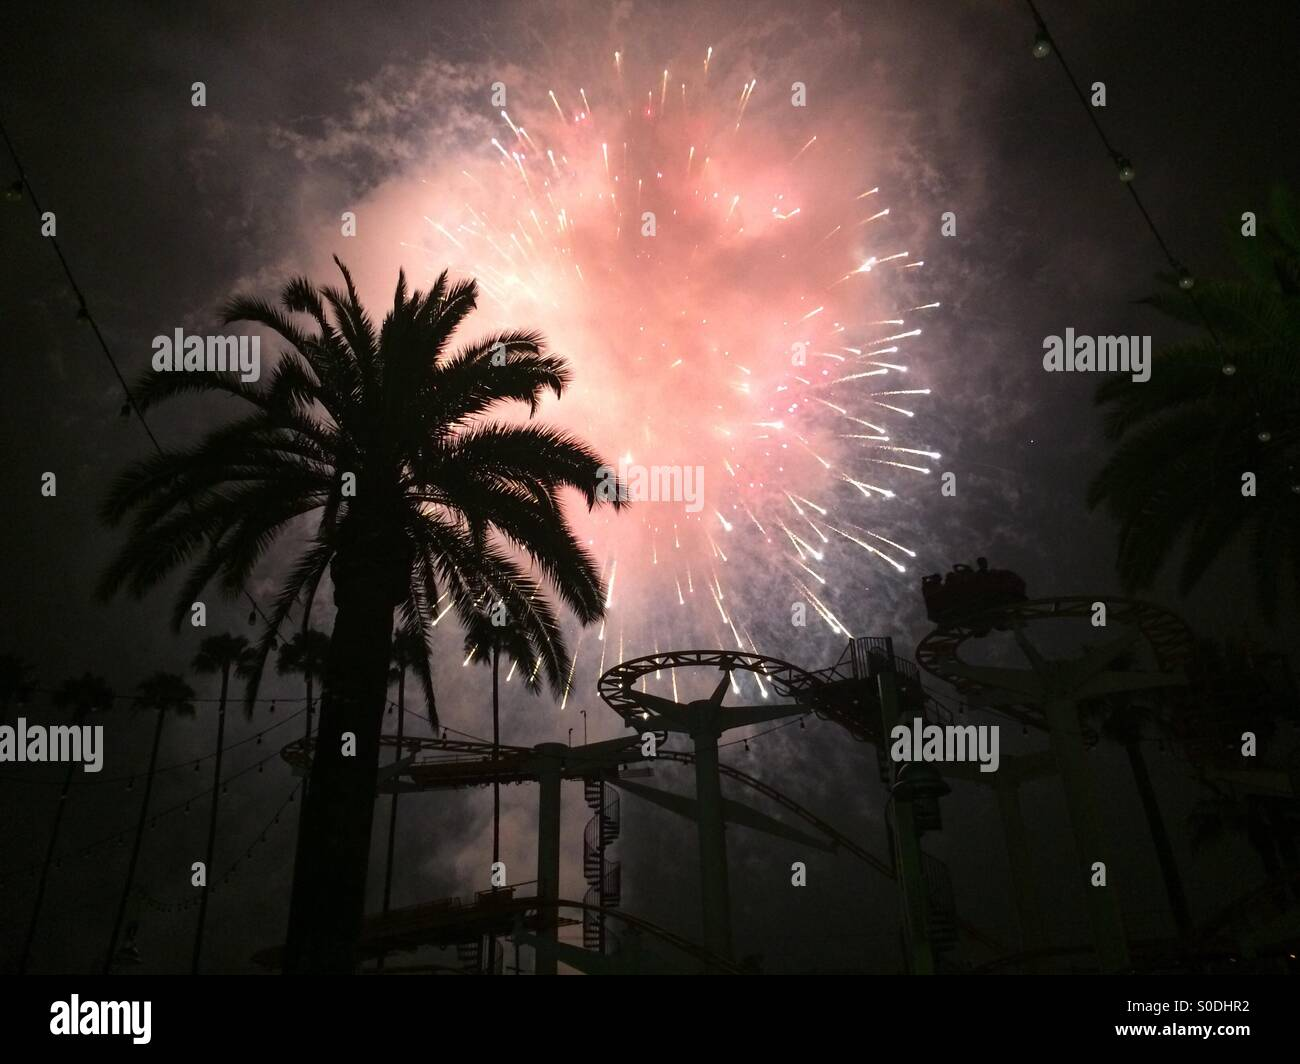 Fire works - Stock Image